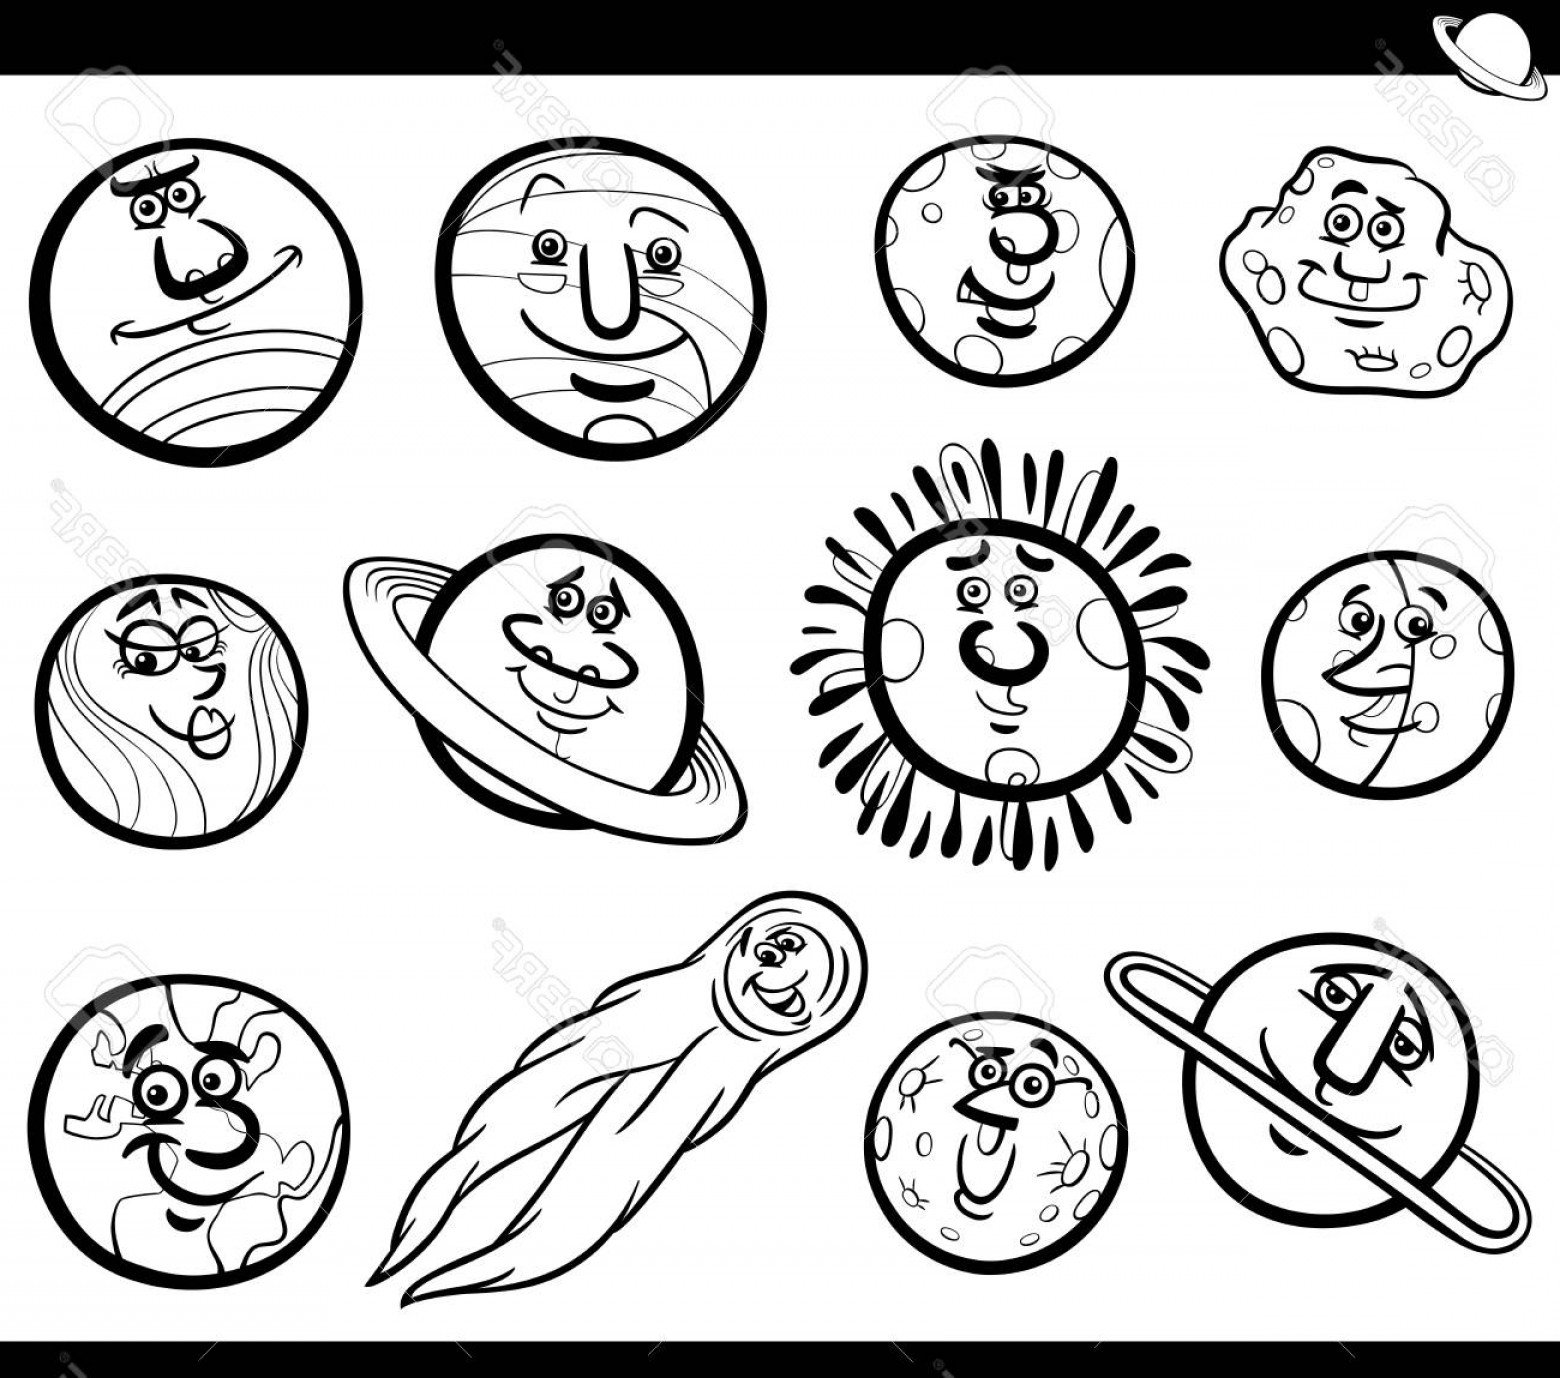 Solar system cartoon black and white clipart clipart royalty free Photostock Vector Black And White Cartoon Illustration Of ... clipart royalty free